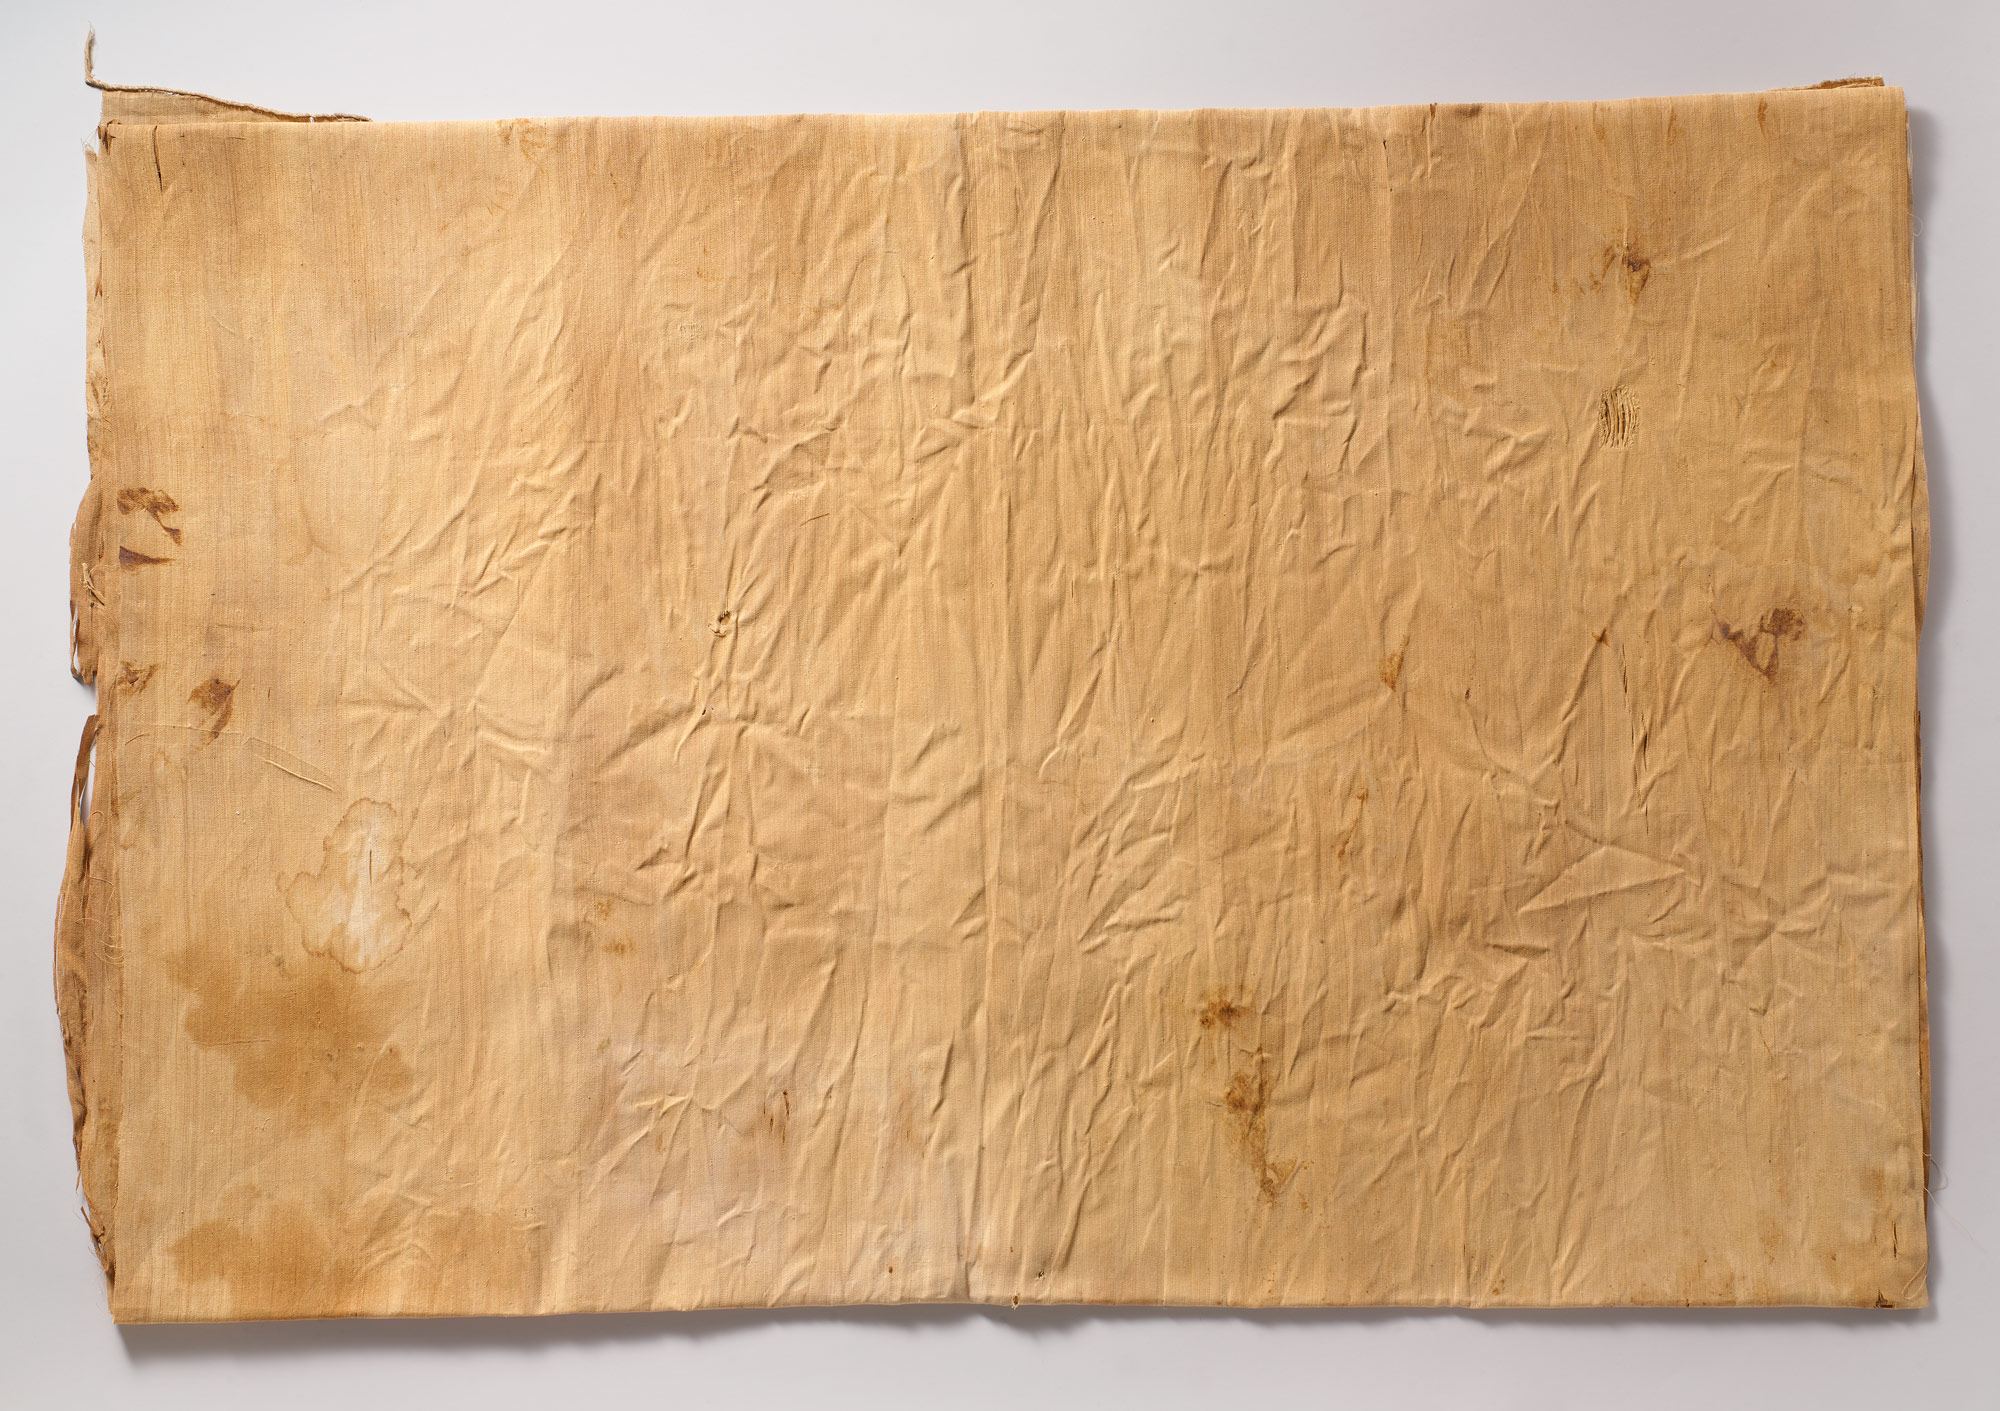 Inscribed Linen Sheet from Tutankhamuns Embalming Cache